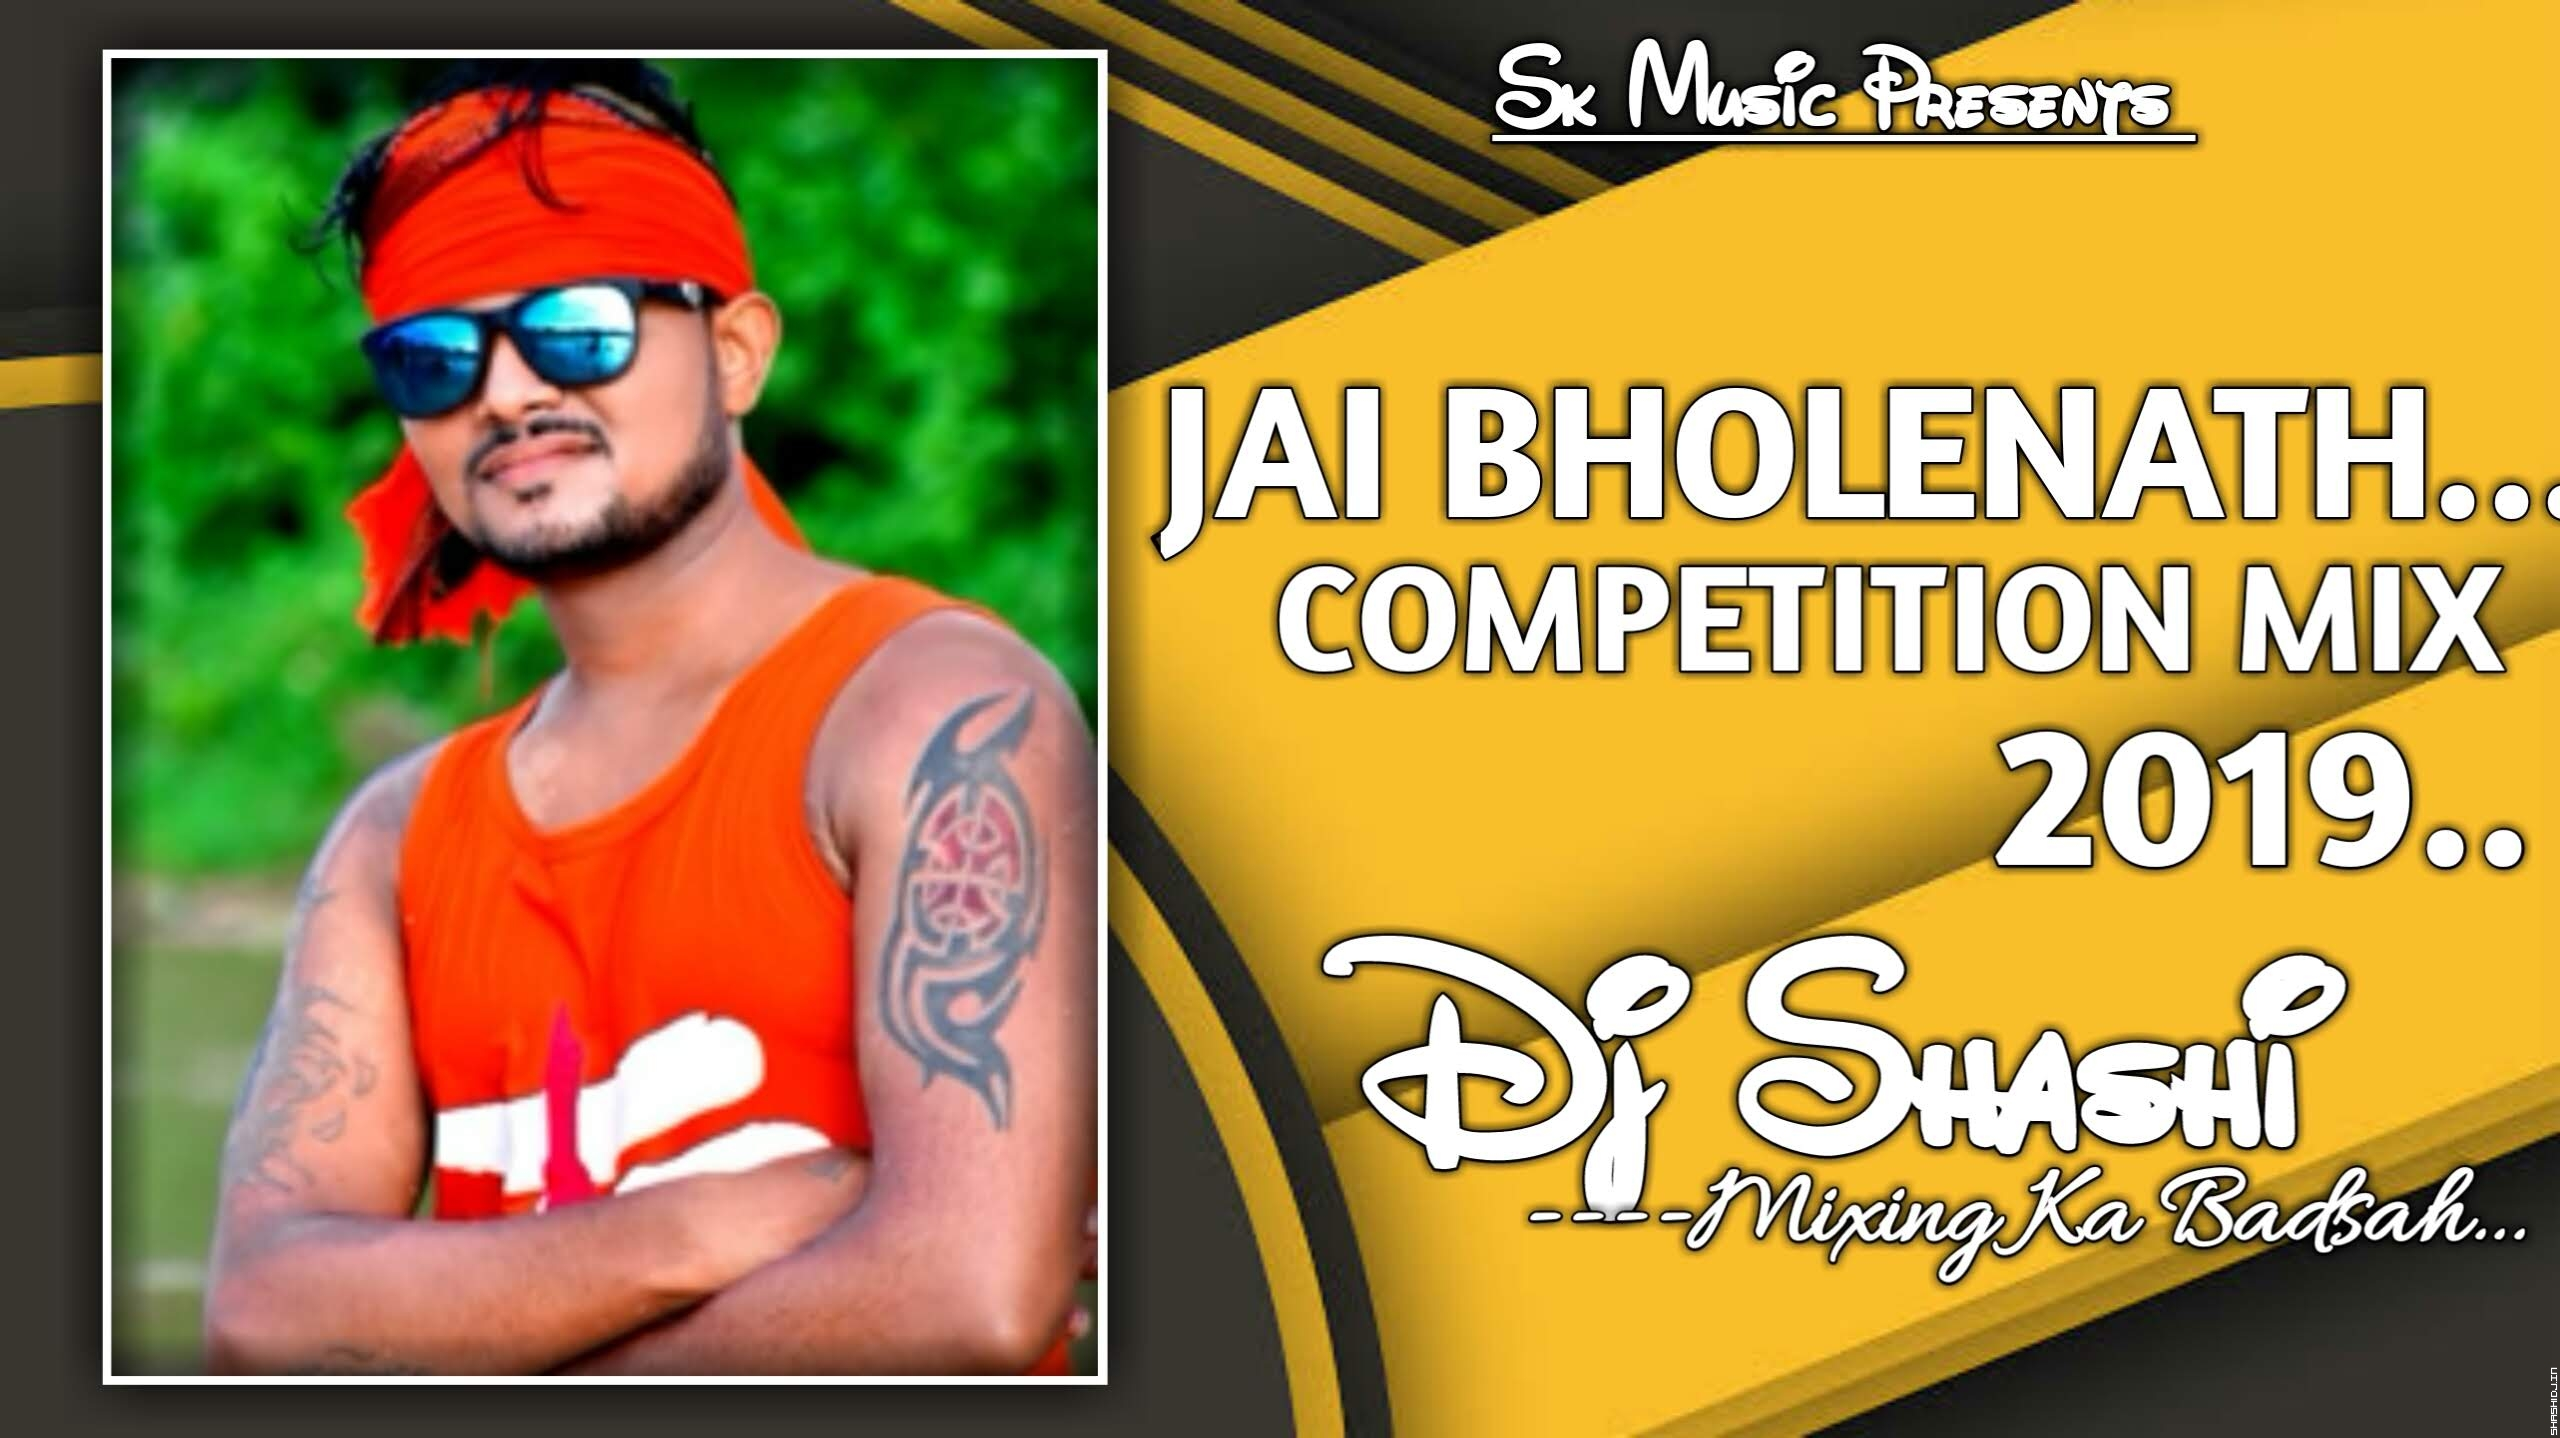 xxx competition WIN SONG BY DJ SHASHI.mp3